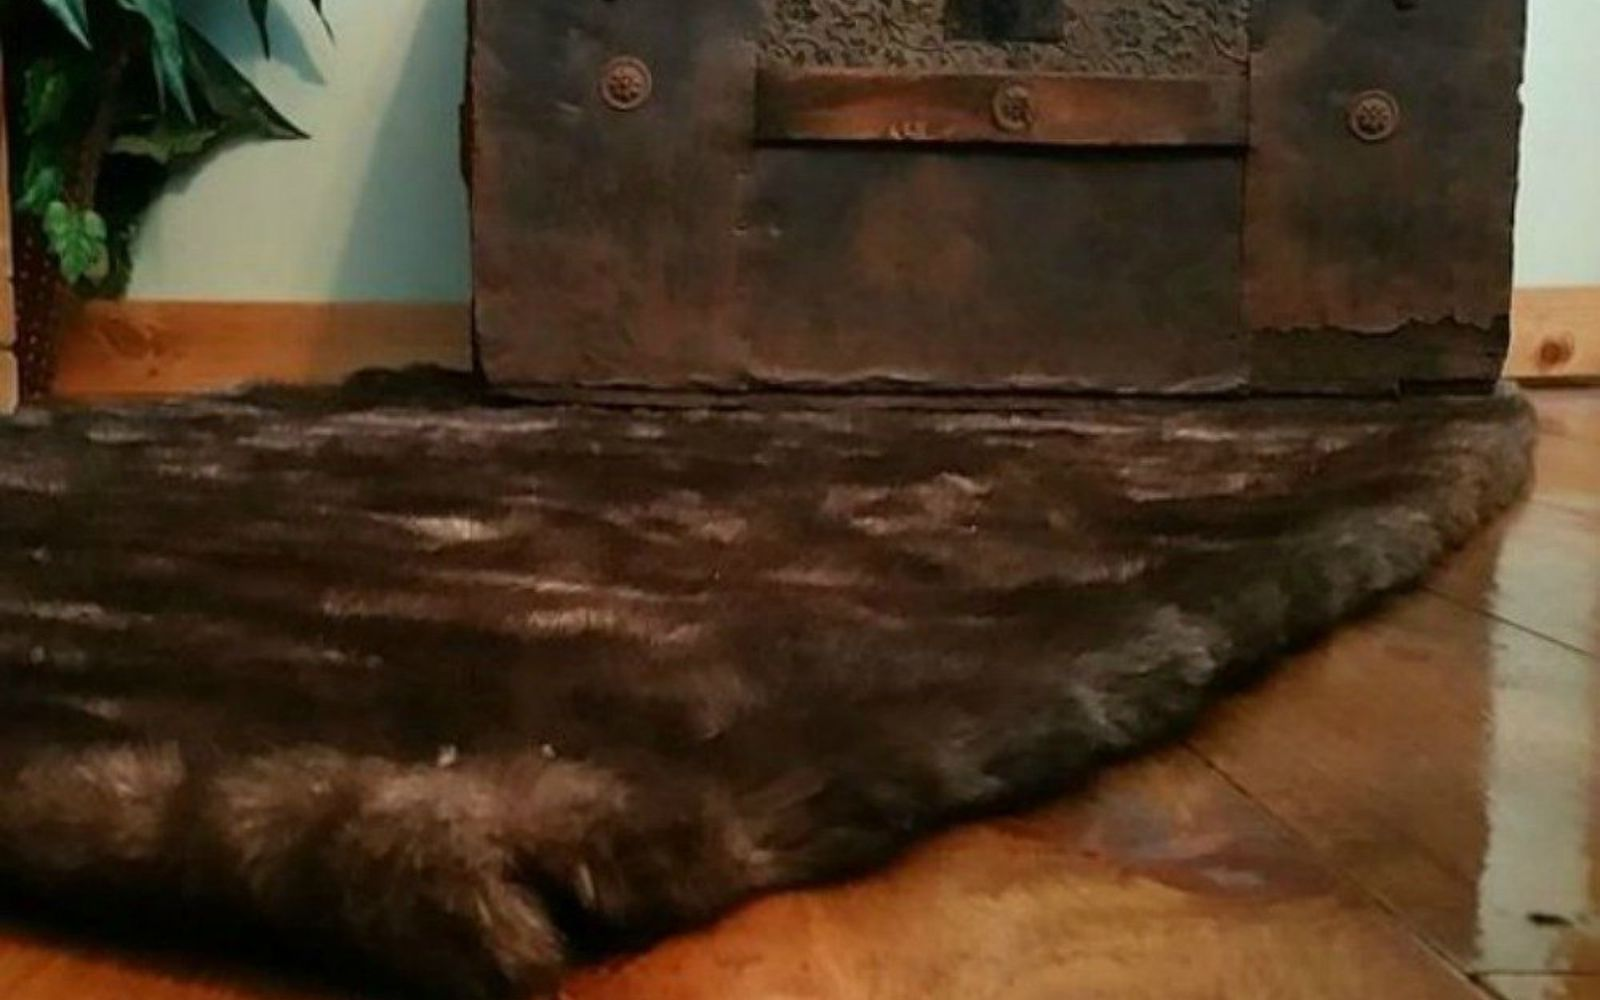 s 16 affordable ways to warm up your home this winter, home decor, Or repurpose a fur coat into a rug